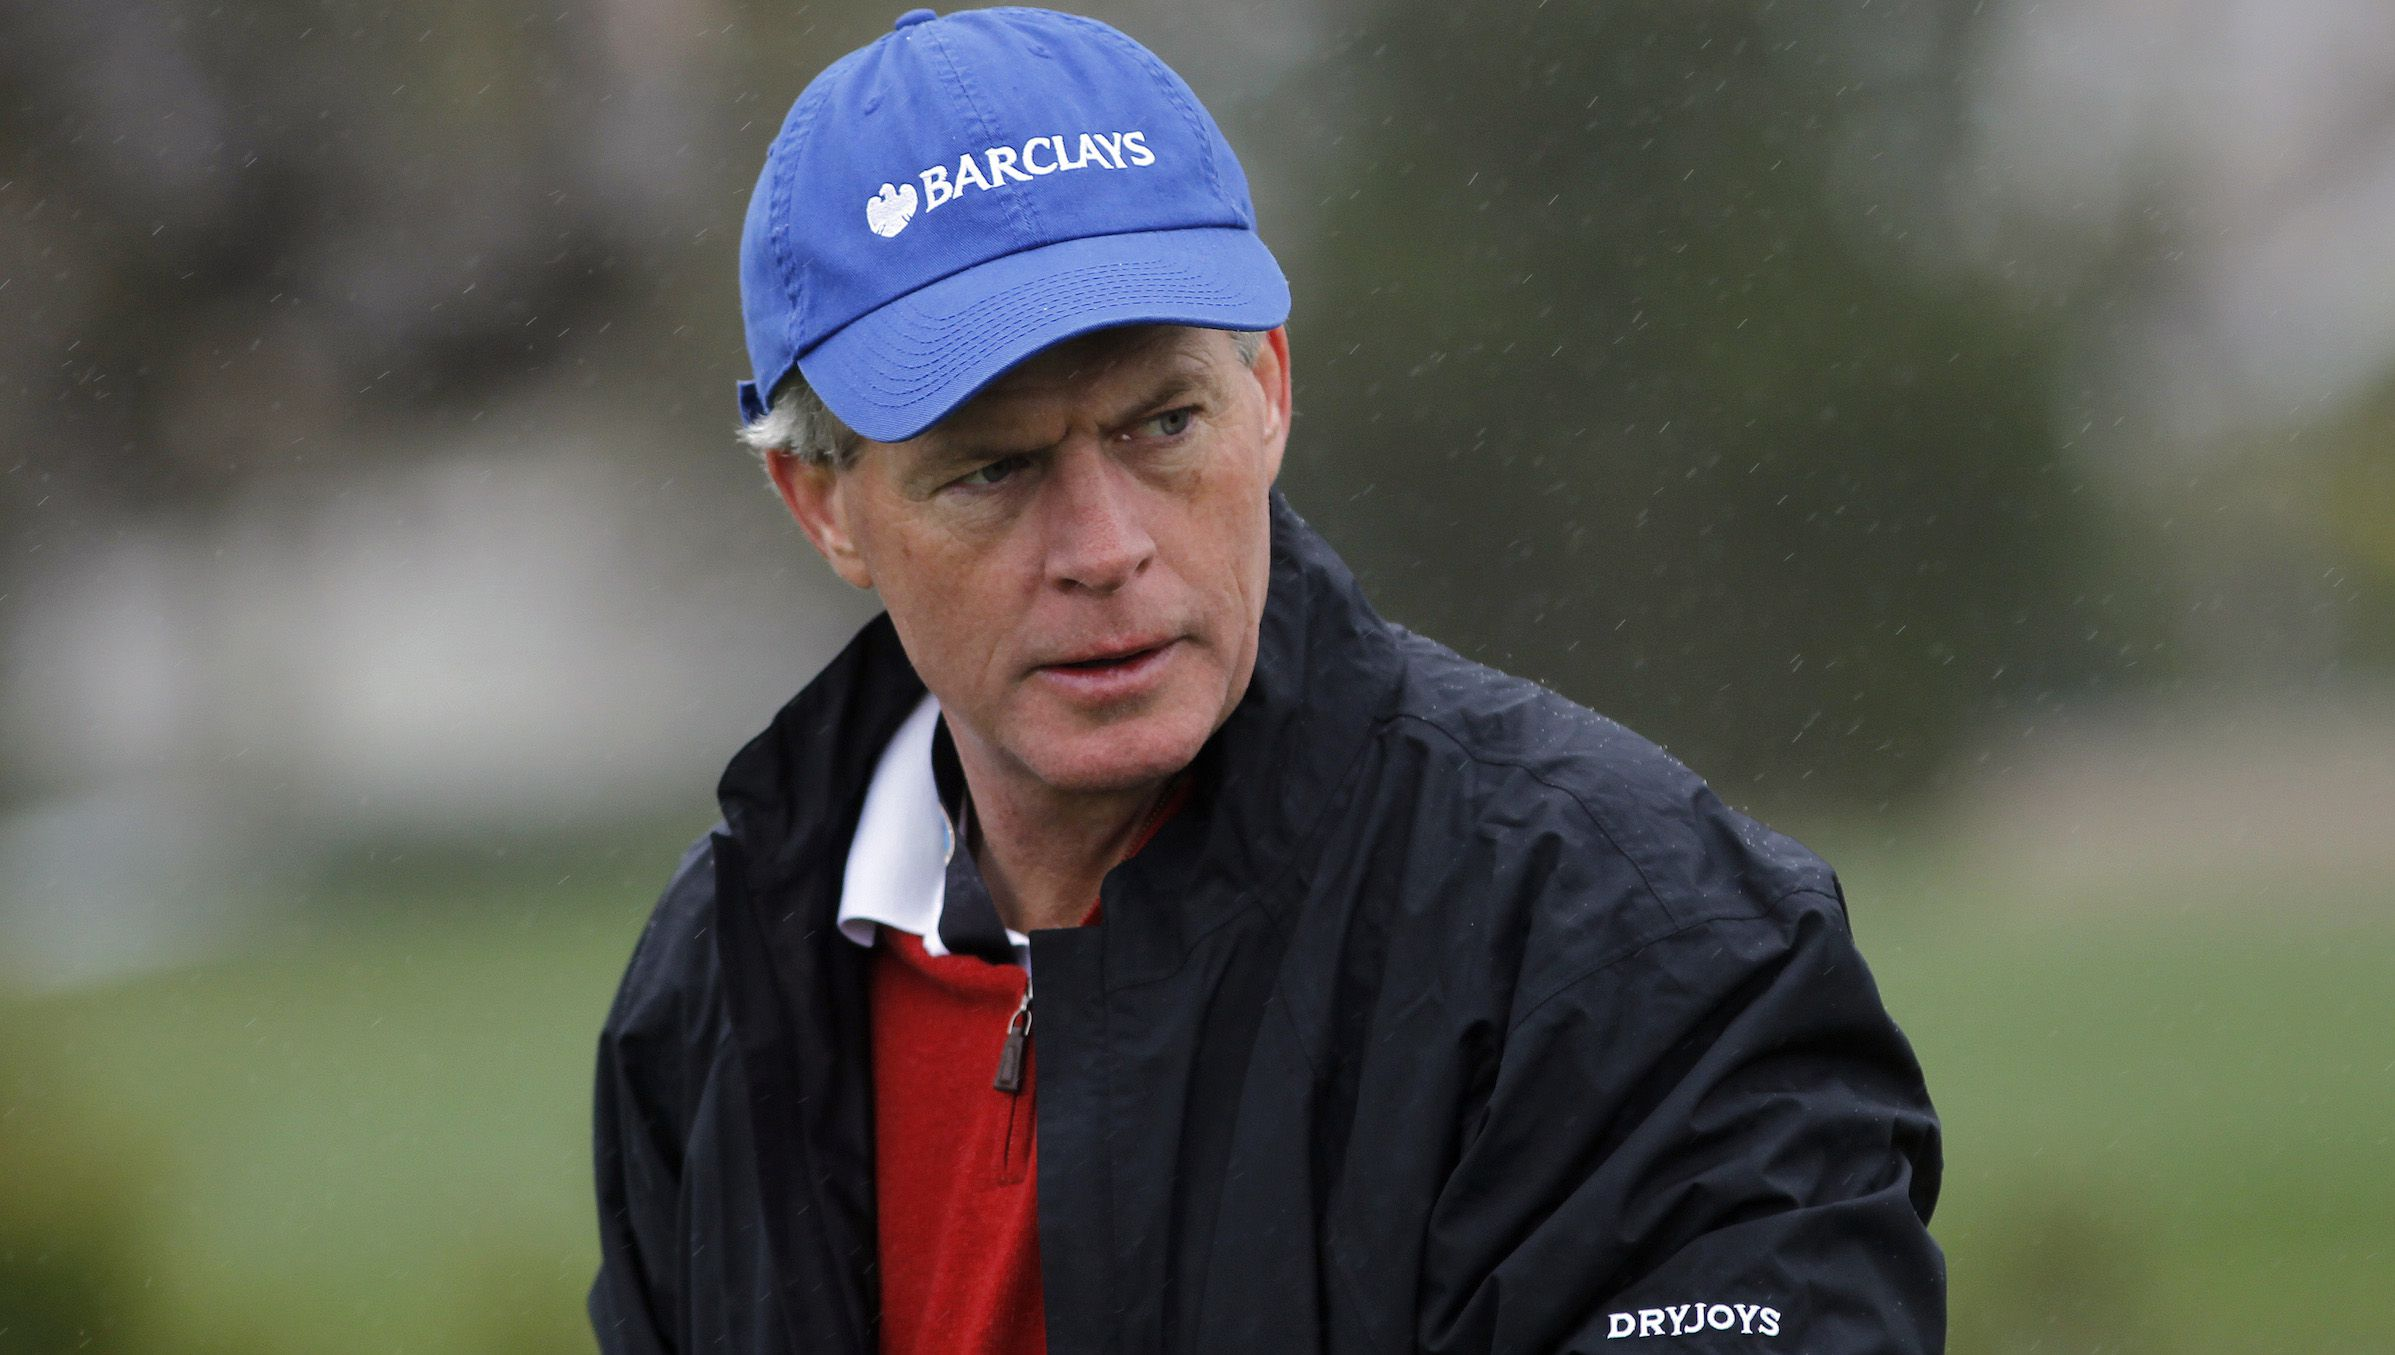 Skip McGee III dons a rain jacket during the second round of the Pebble Beach National Pro-Am